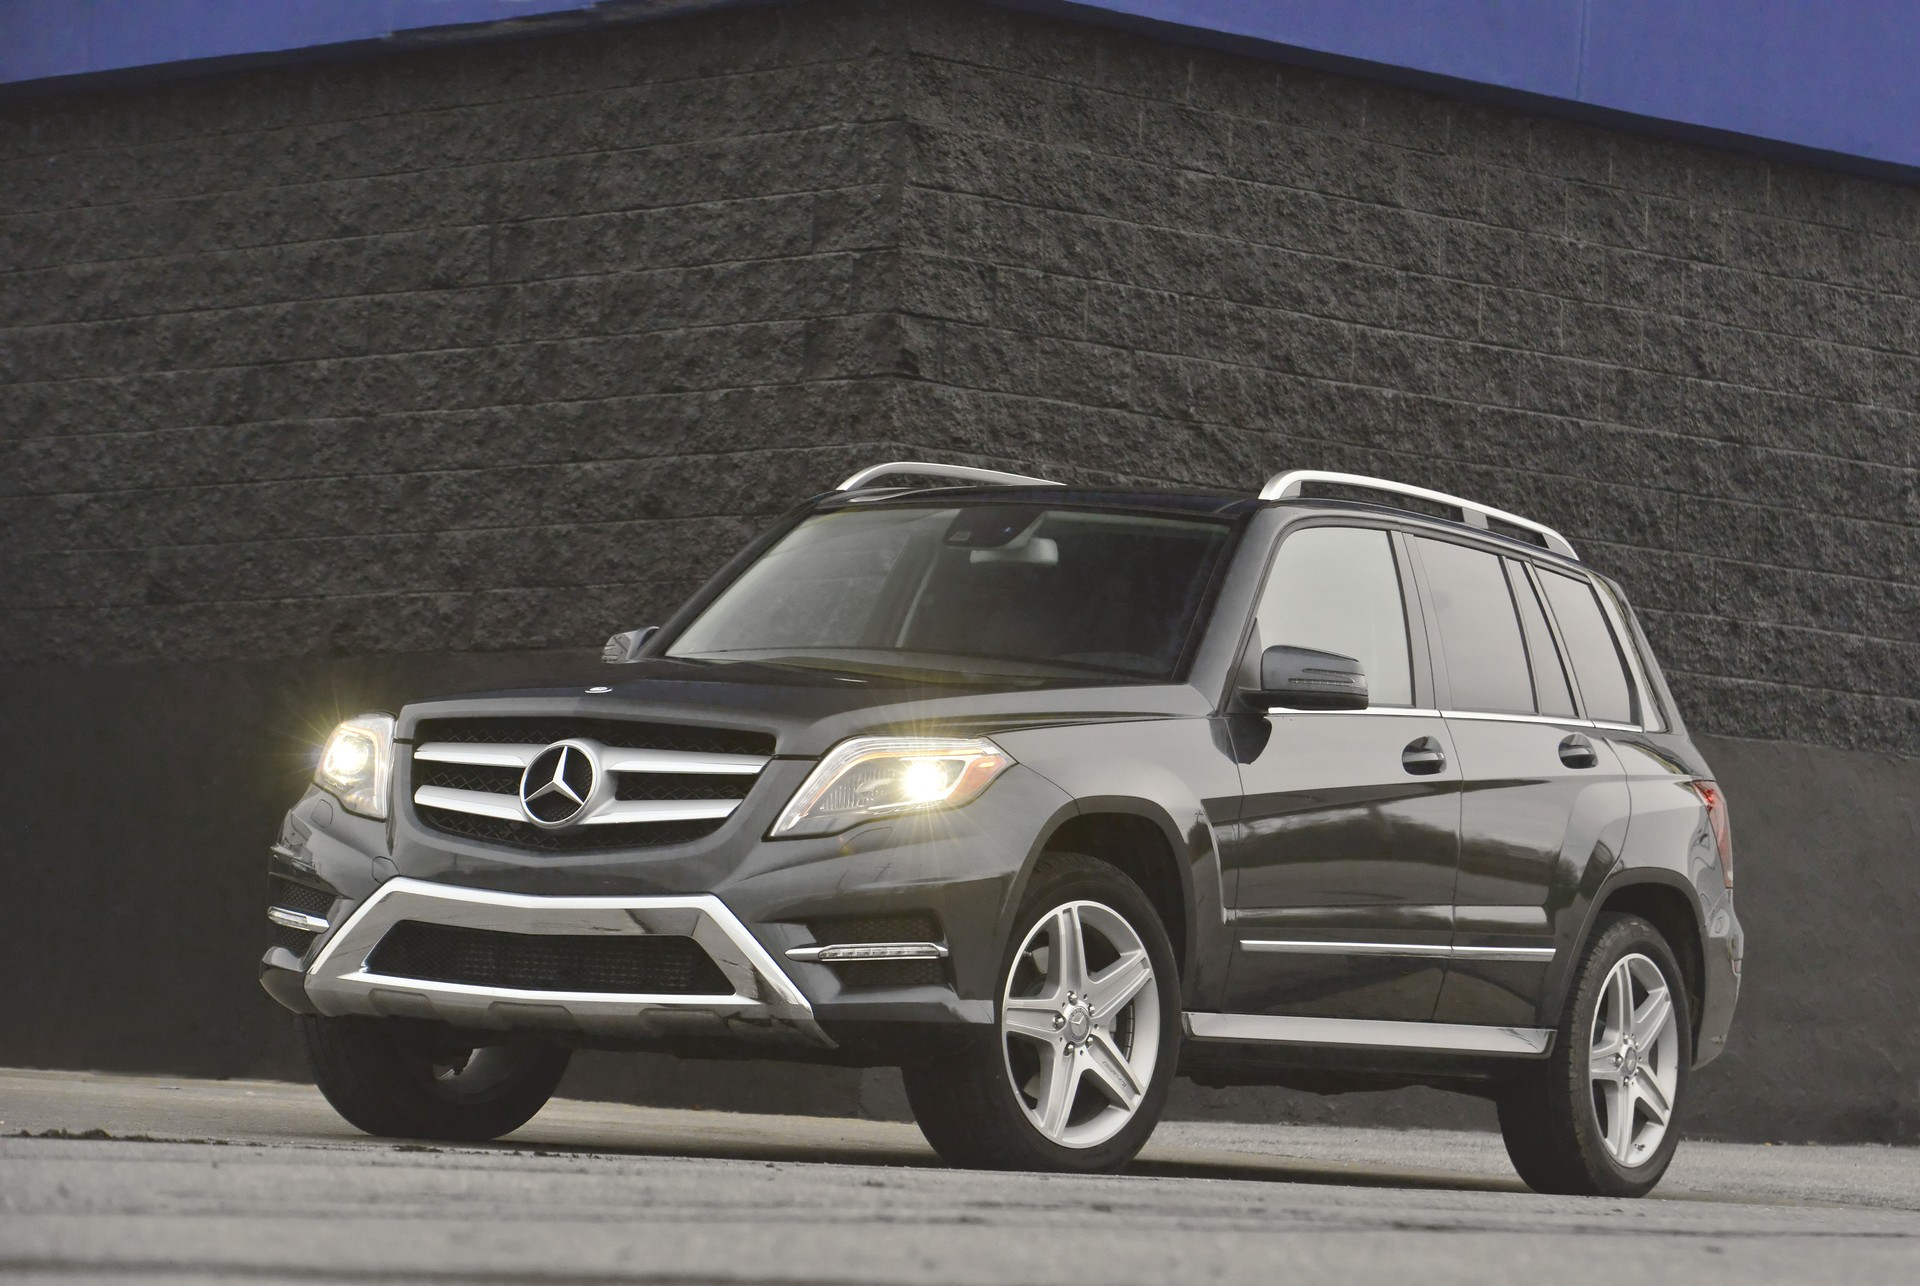 2014 mercedes benz glk class review ratings specs for 2014 mercedes benz glk350 price